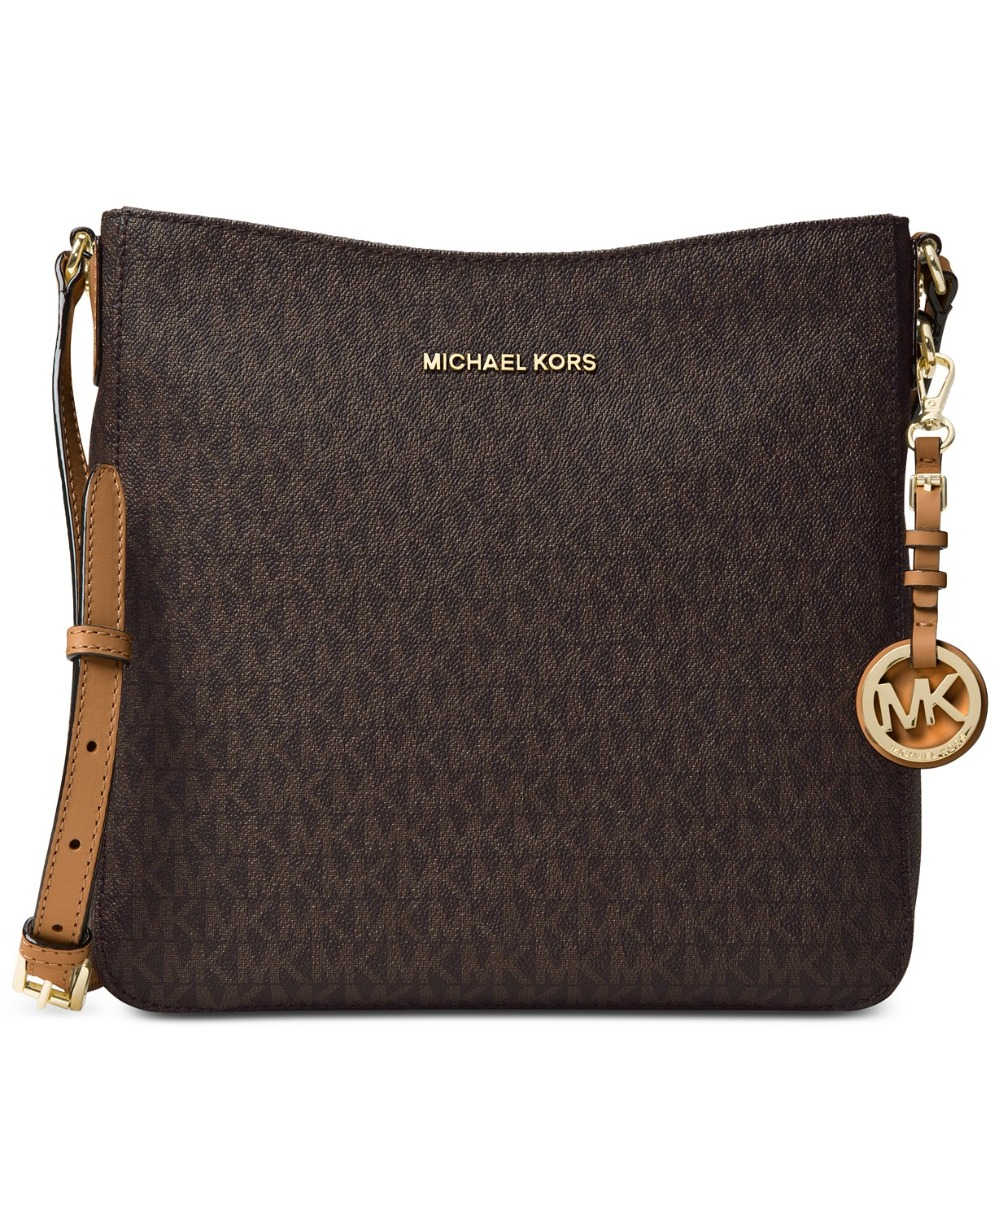 ... Michael Kors Signature Jet Set Travel Messenger Large Luxury Handbags  For Women Bags Designer by MK ...